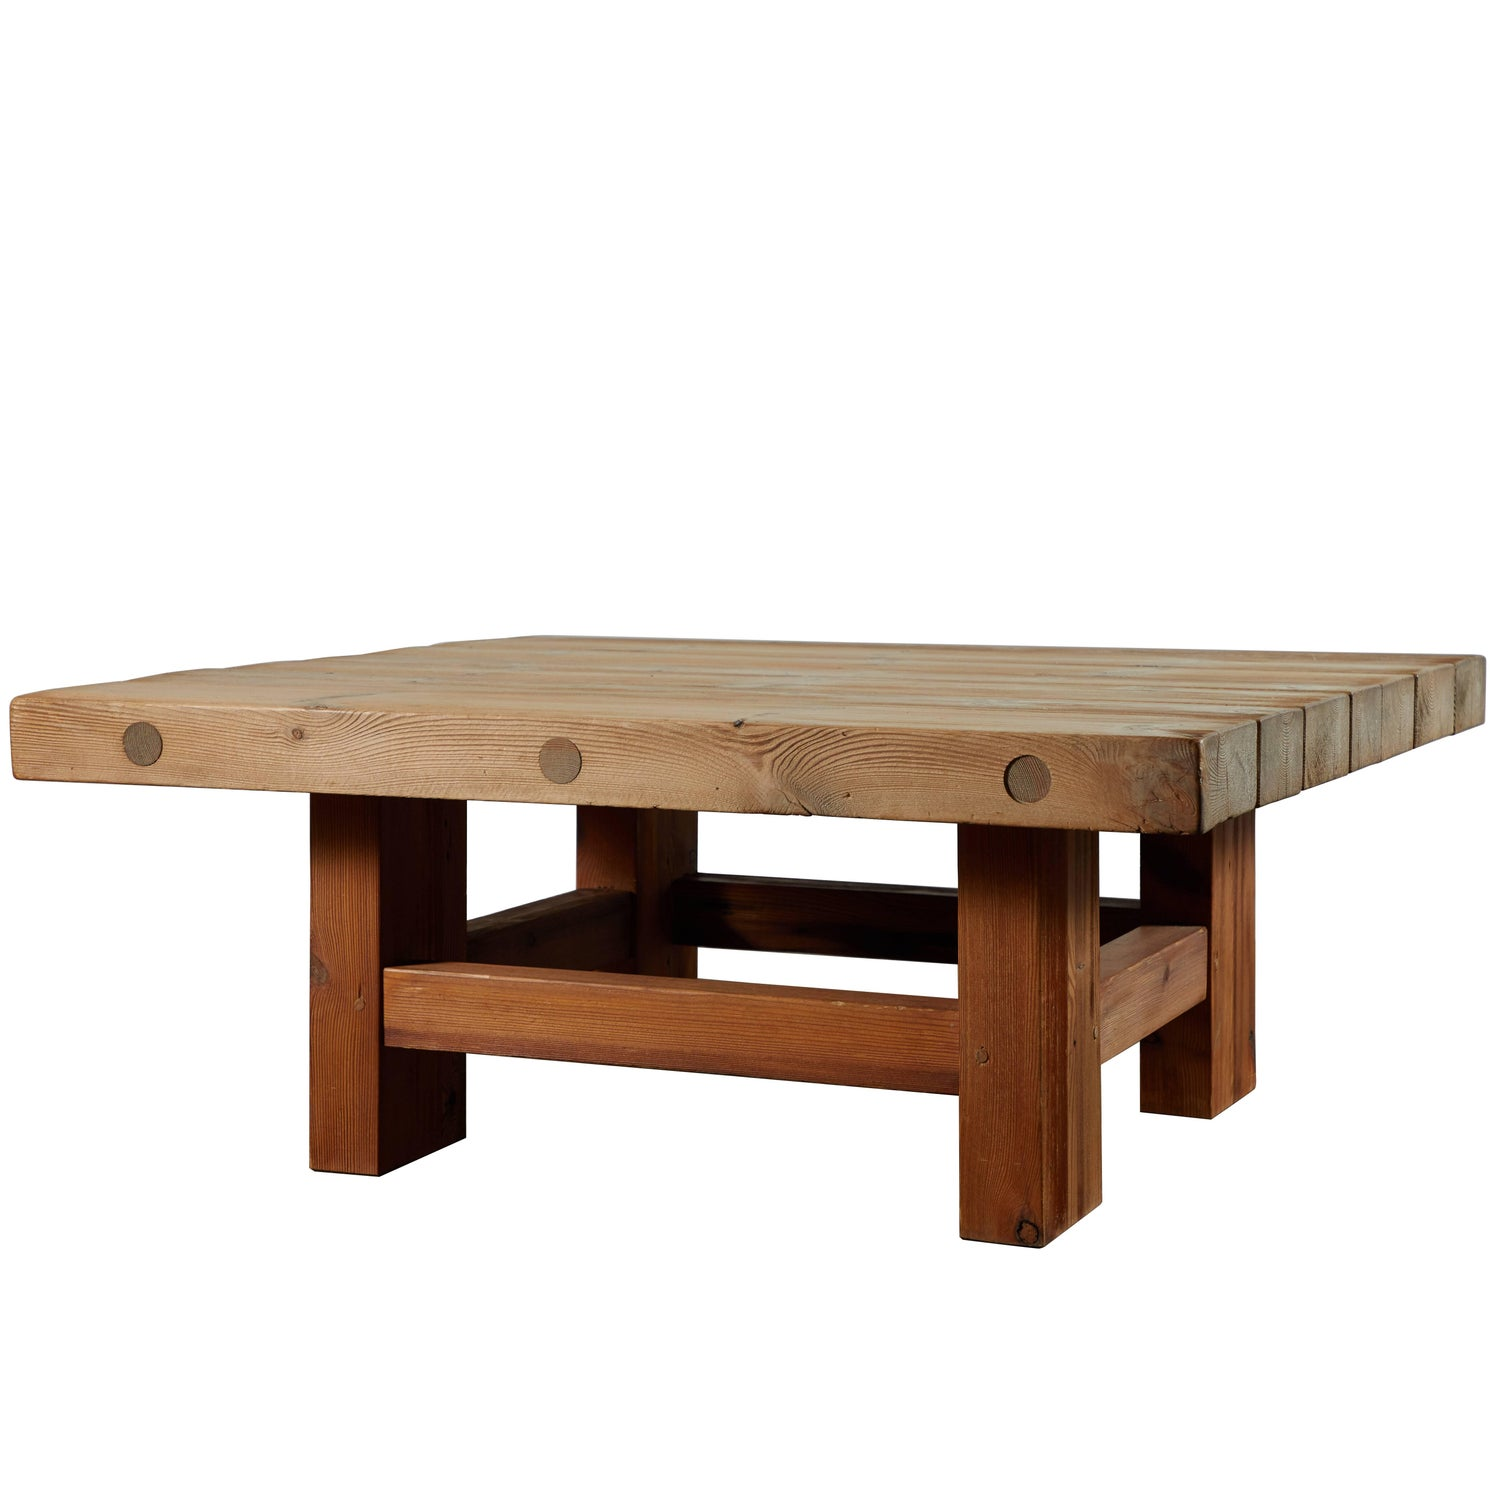 Pine Coffee and Cocktail Tables 64 For Sale at 1stdibs